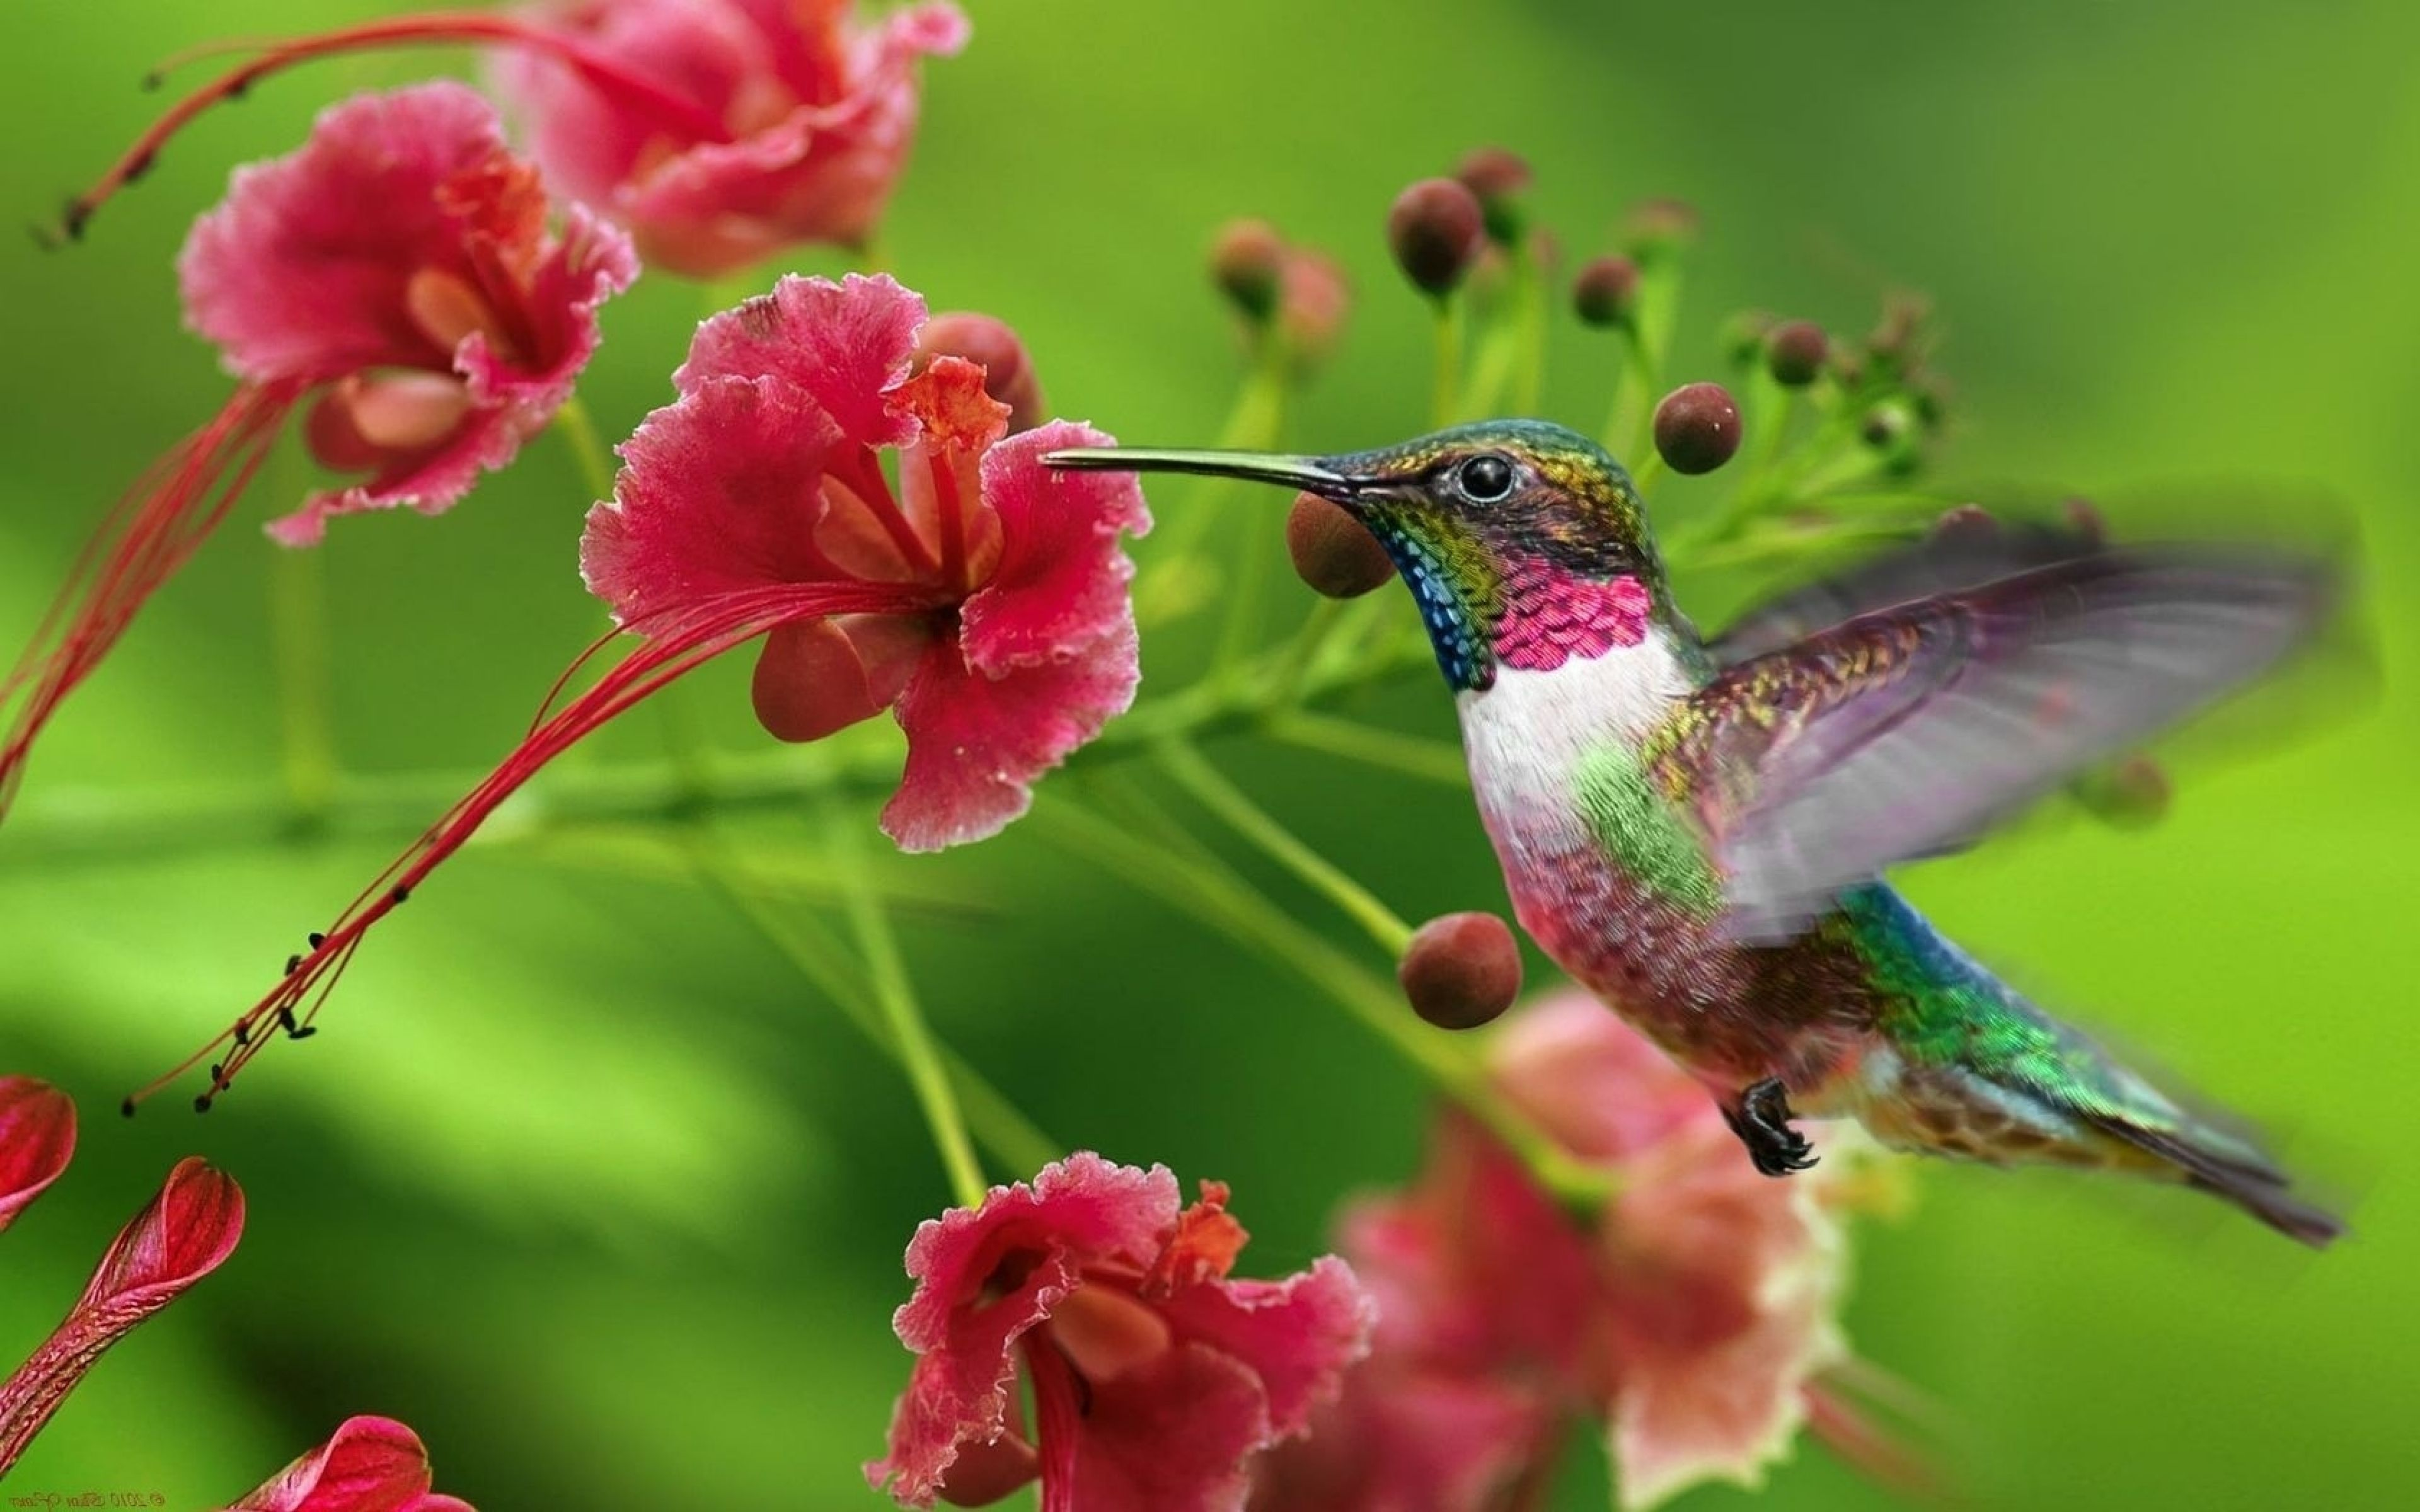 Backgrounds For Exotic Flower Wallpaper Backgrounds | www ...